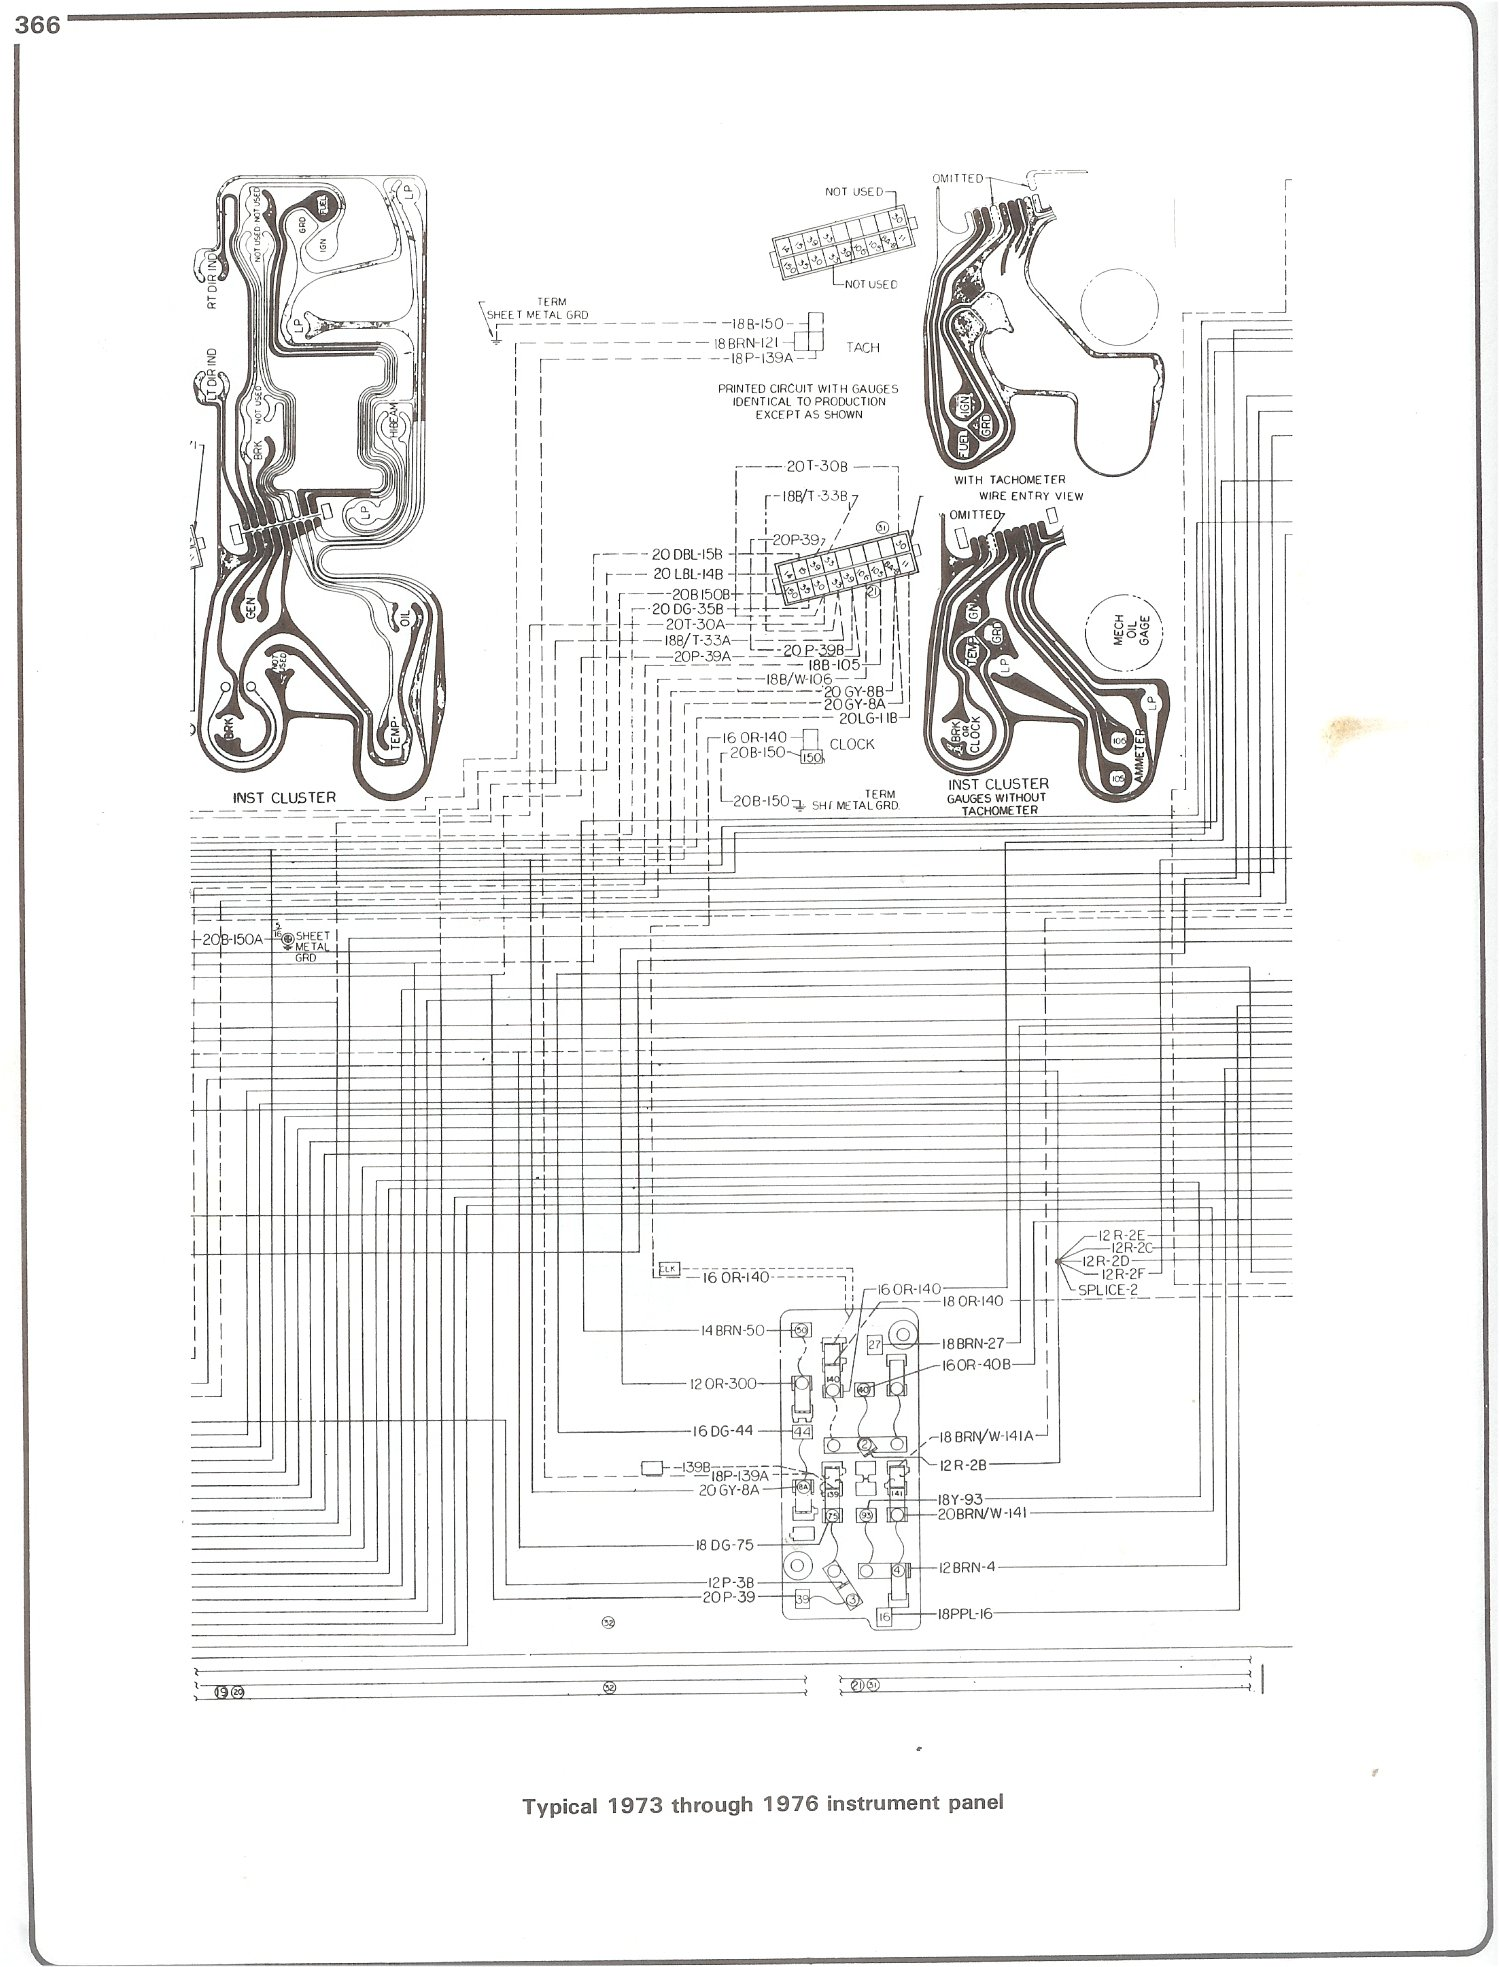 73 76_instrument complete 73 87 wiring diagrams 1990 gmc suburban stereo wiring diagram at suagrazia.org